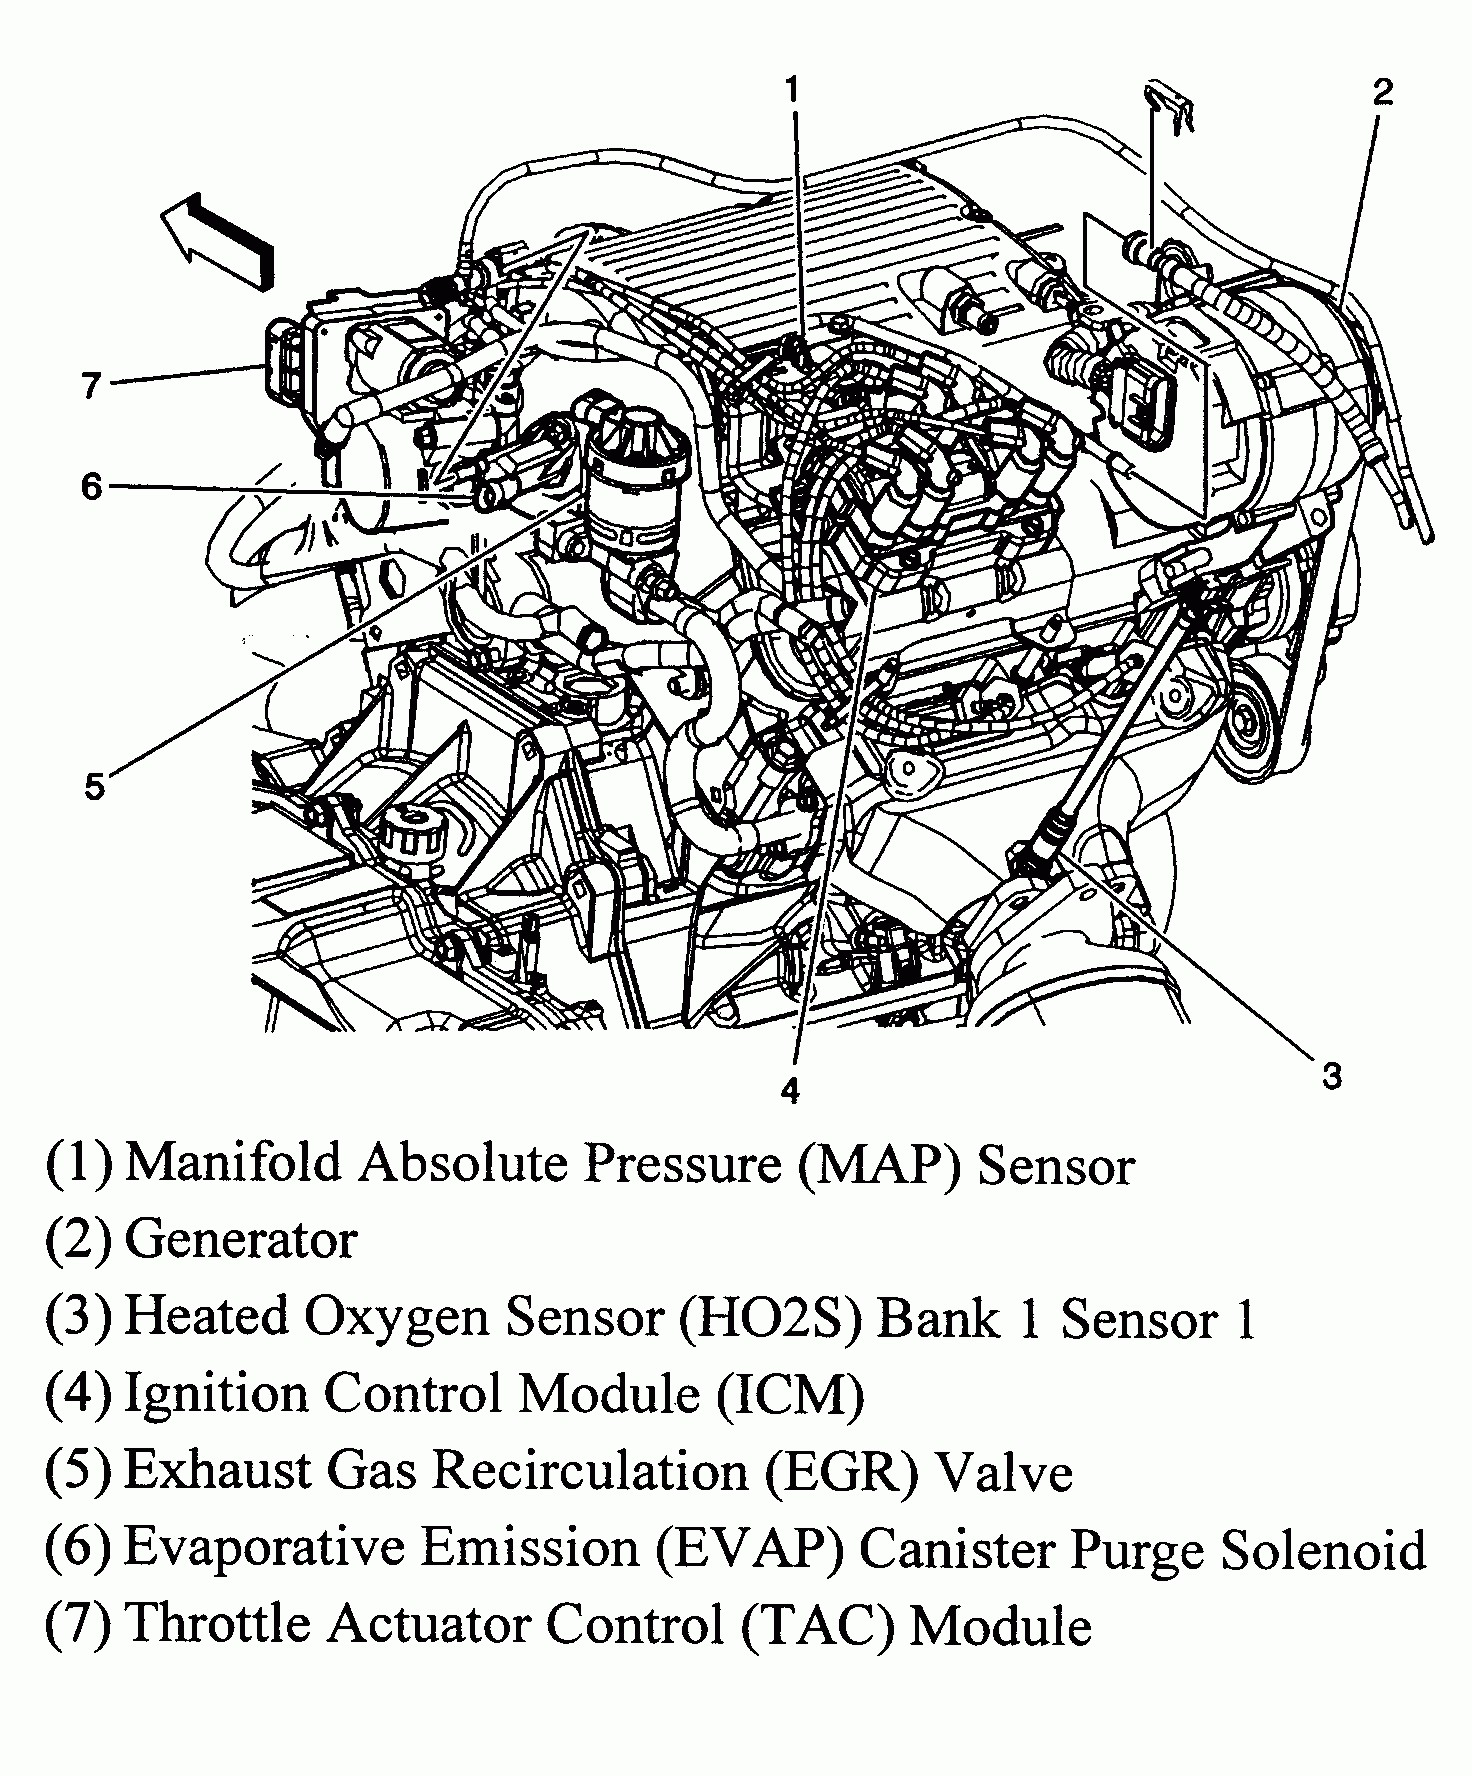 wrg 9303] pontiac g6 ignition wiring diagram Diagram 2007 Pontiac G6 Motor pontiac g6 motor diagrams trusted wiring diagram u2022 rh soulmatestyle co 2006 pontiac g6 gtp engine